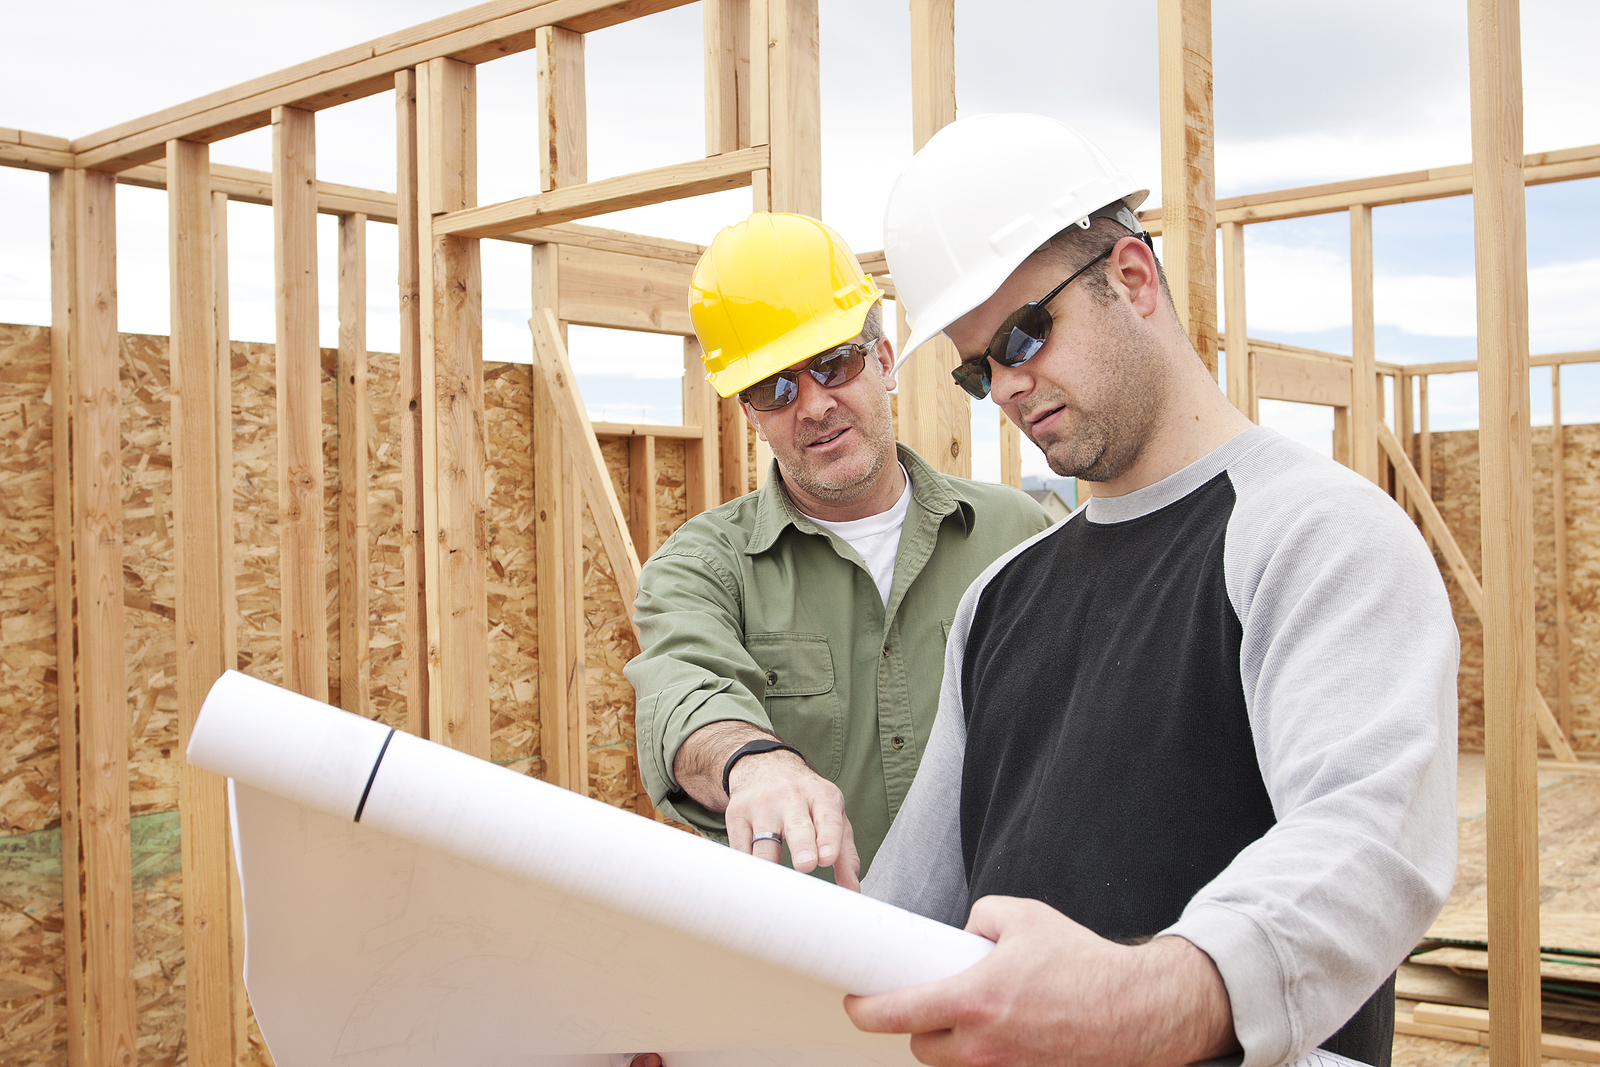 Successful Project Management is Key in Construction Biz